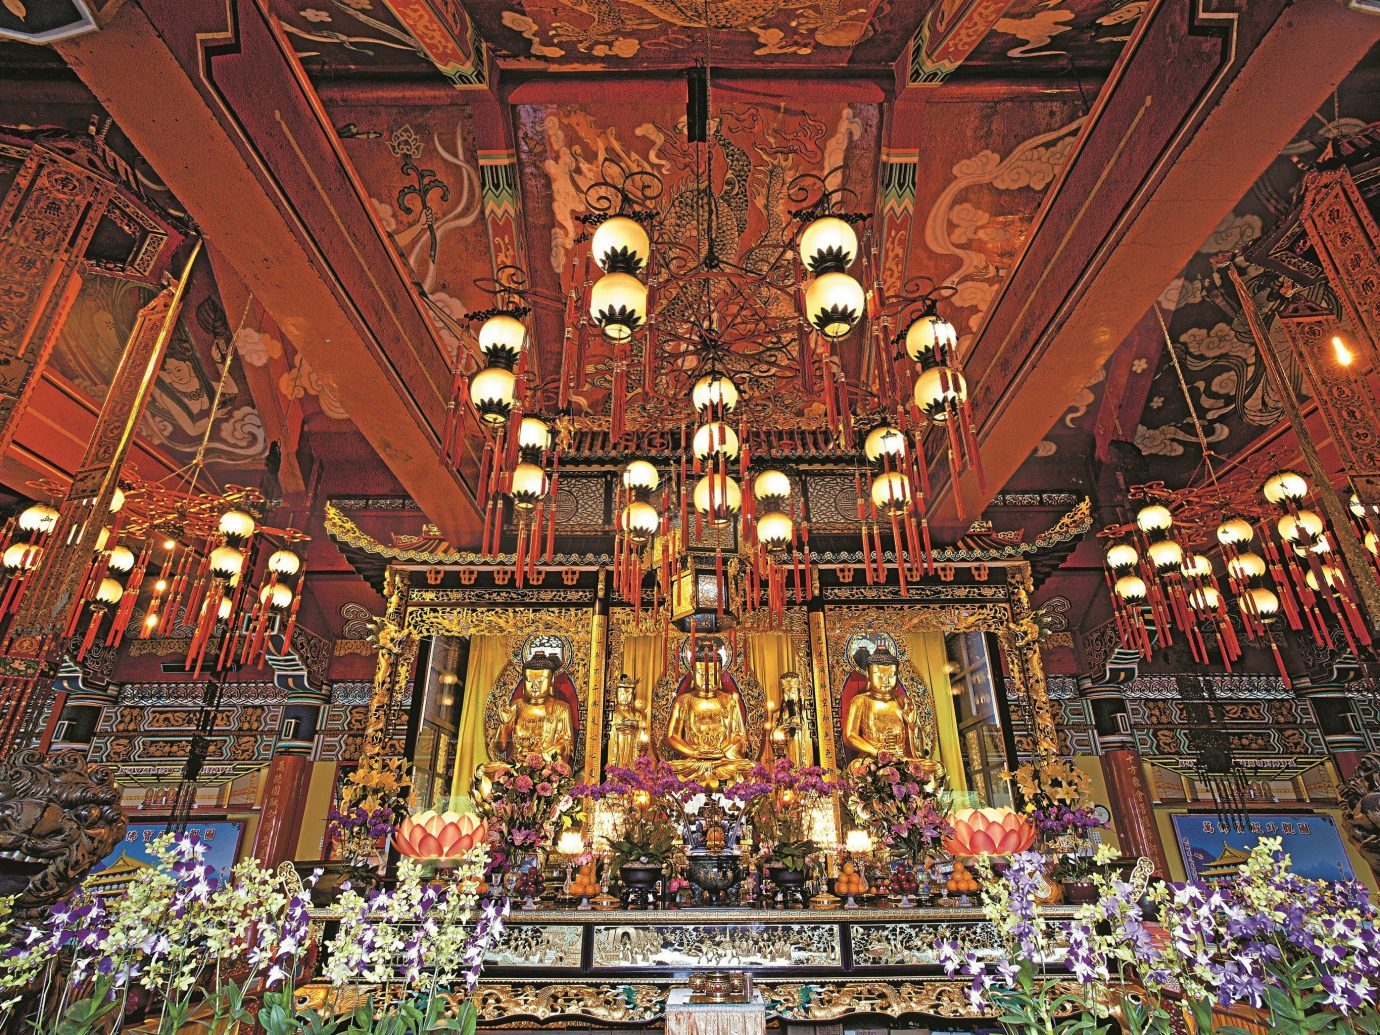 Trip Ideas building place of worship altar shrine temple